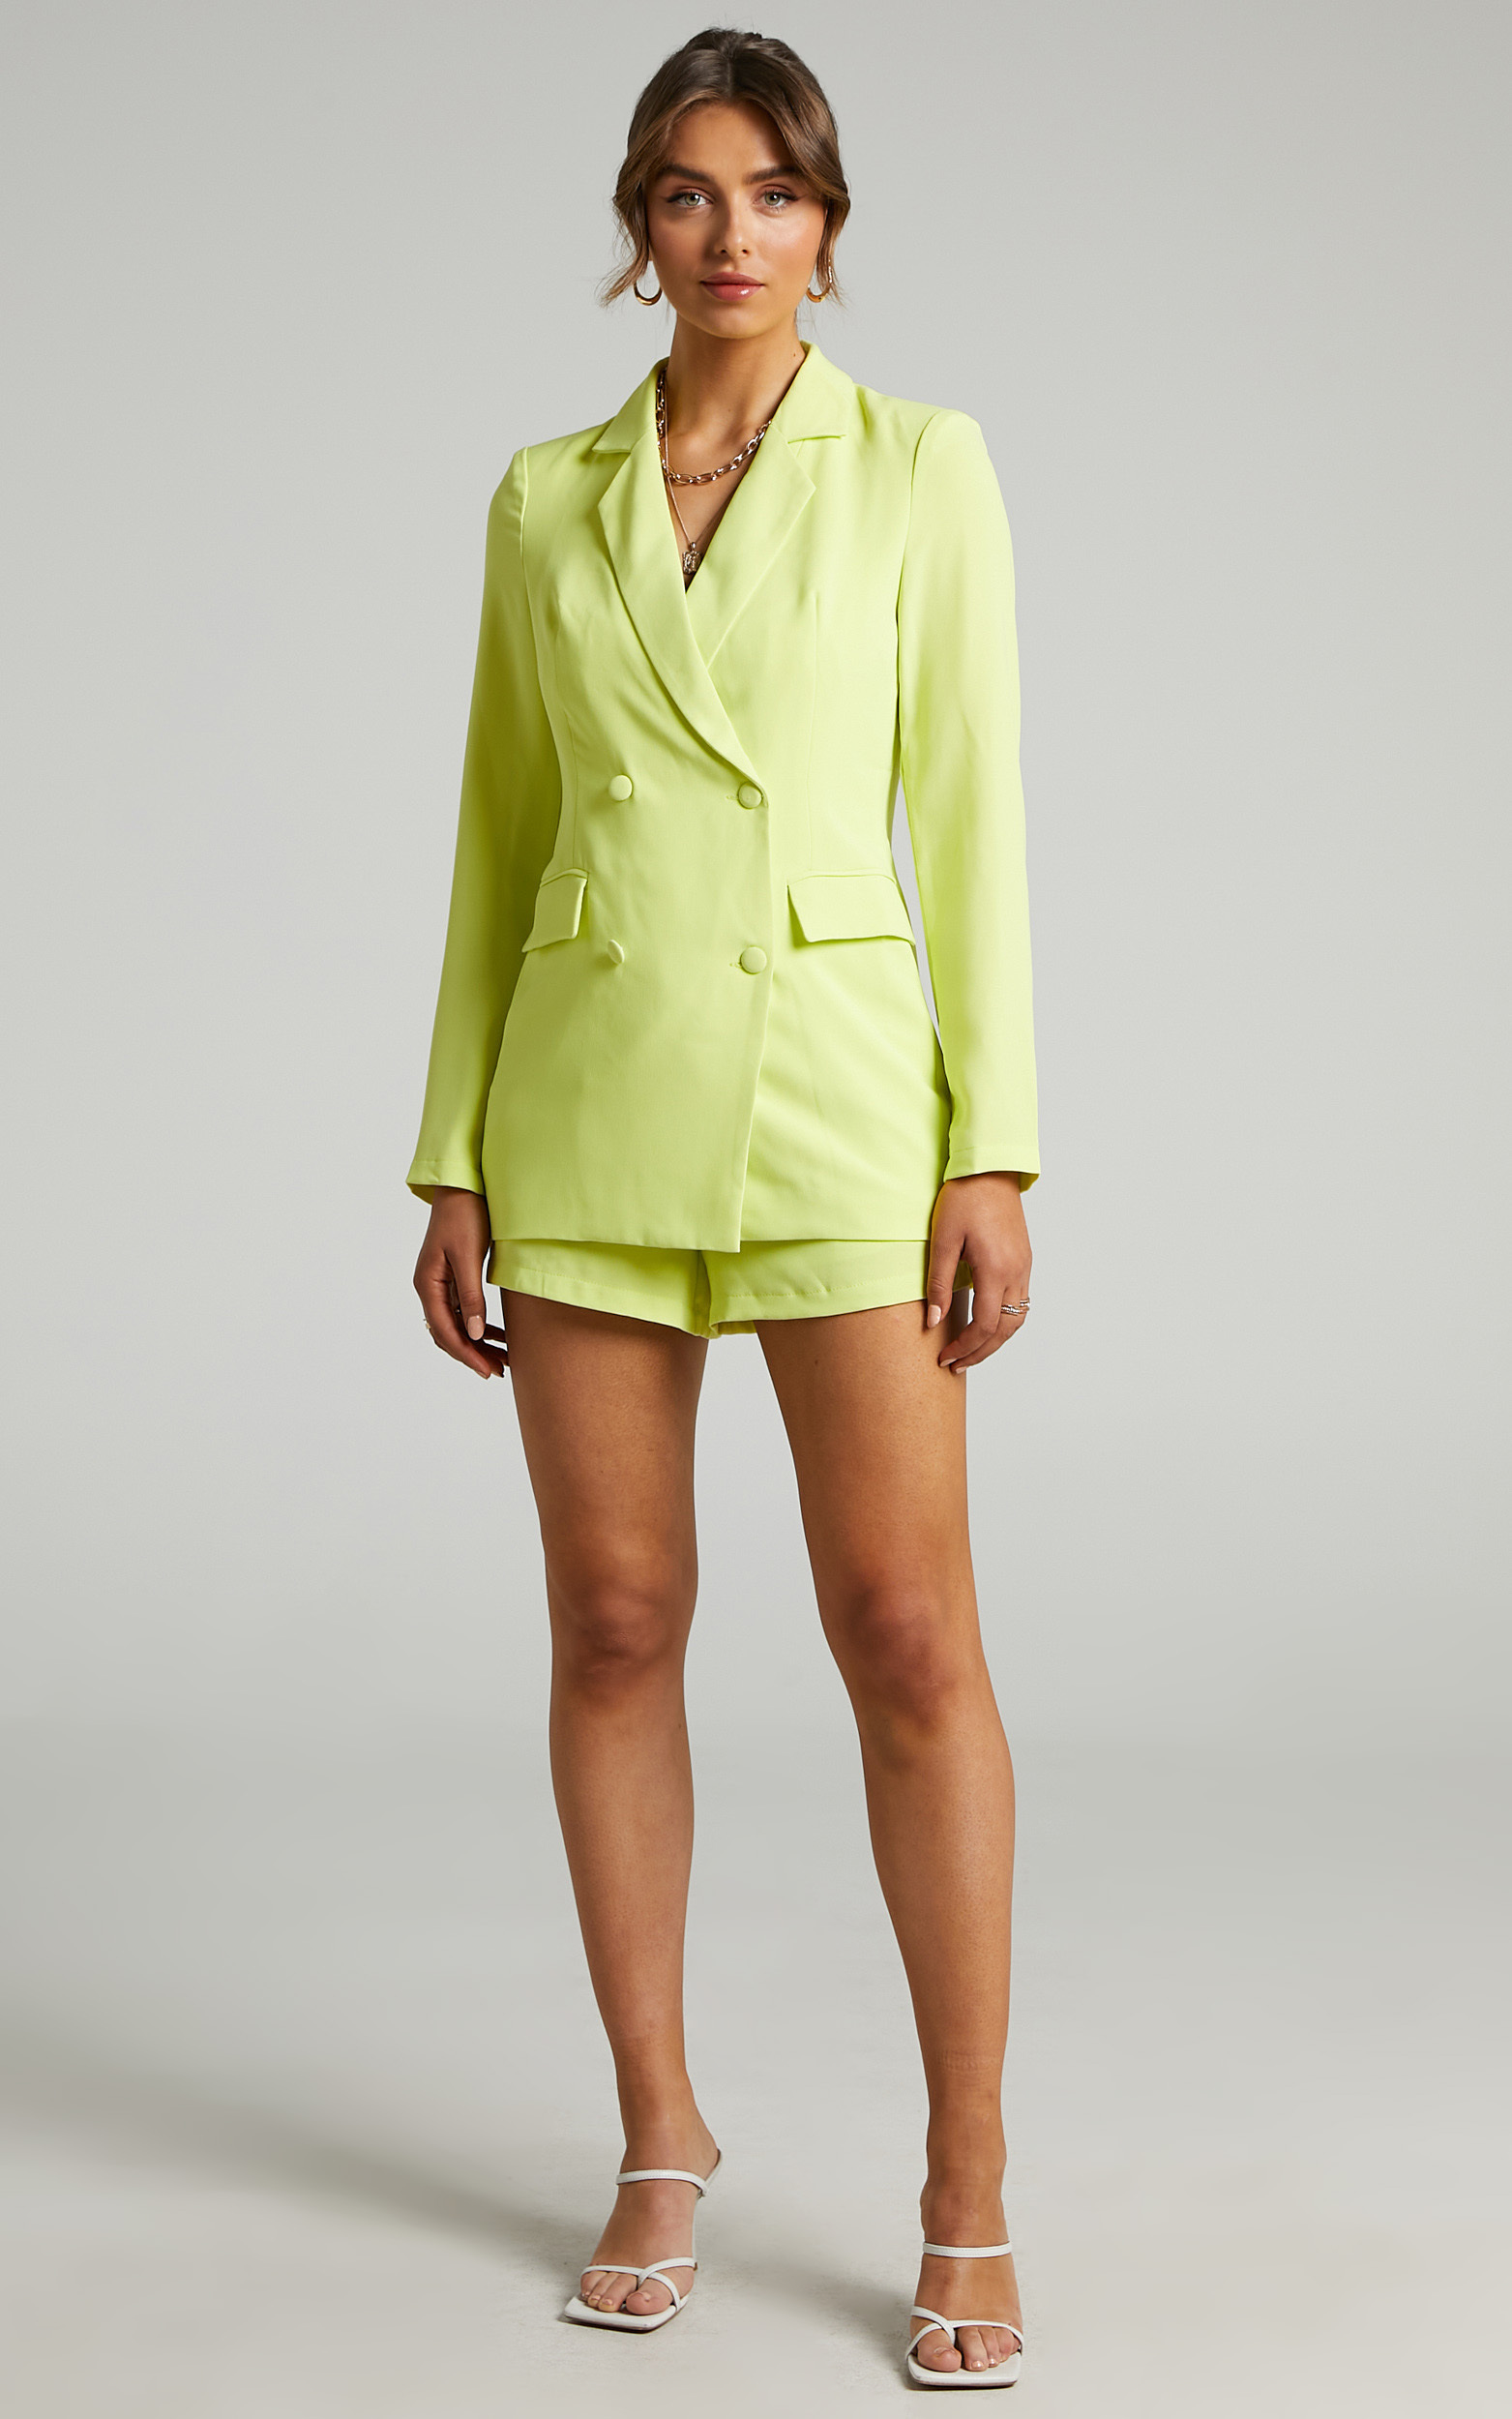 Quick To Win Blazer in Lime - 06, GRN2, hi-res image number null